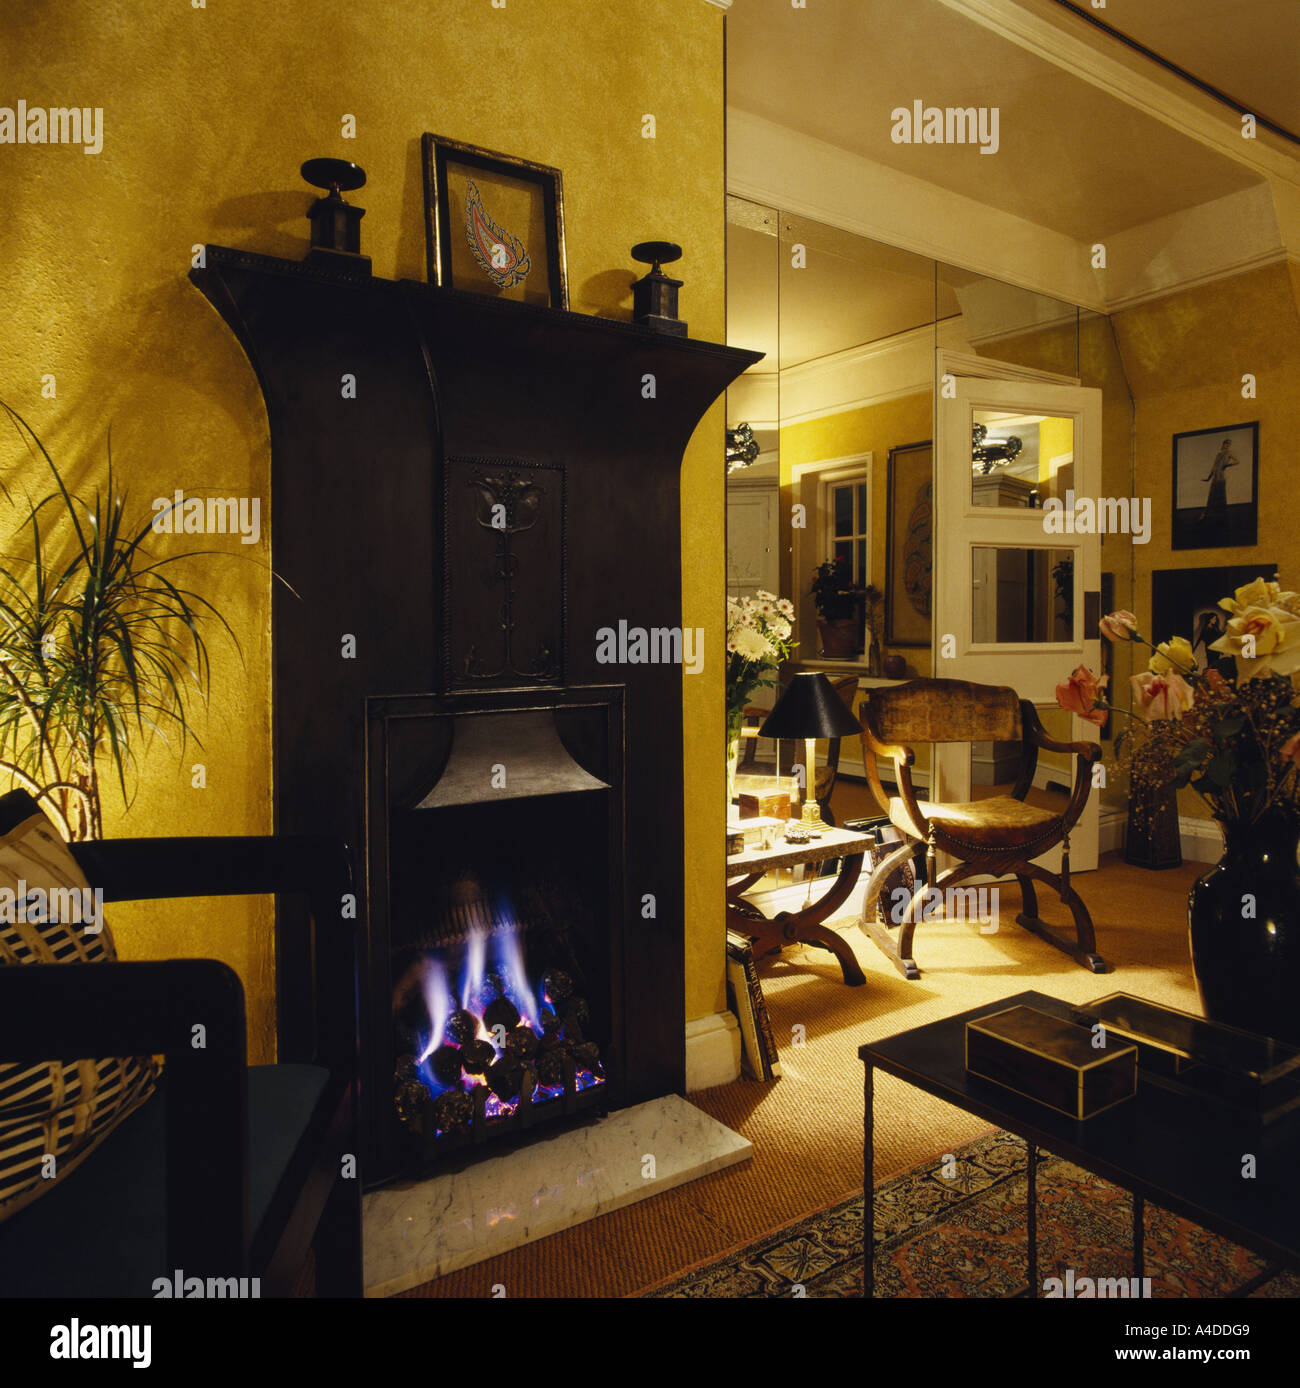 Lighted gas fire in traditional black cast iron fireplace in modern eighties living room Stock Photo